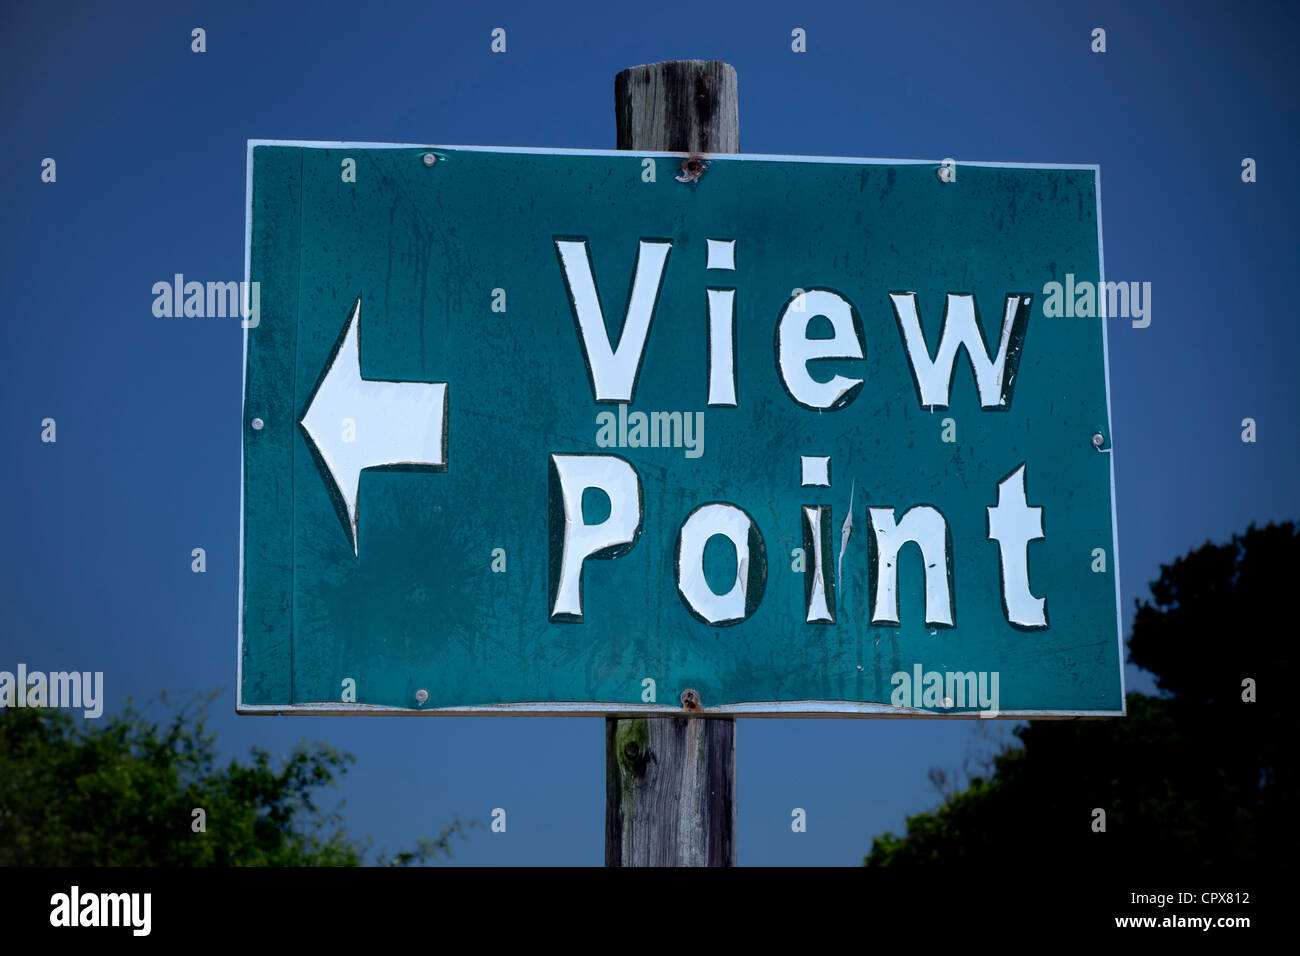 Closeup of an information sign that reads 'View Point' - Stock Image